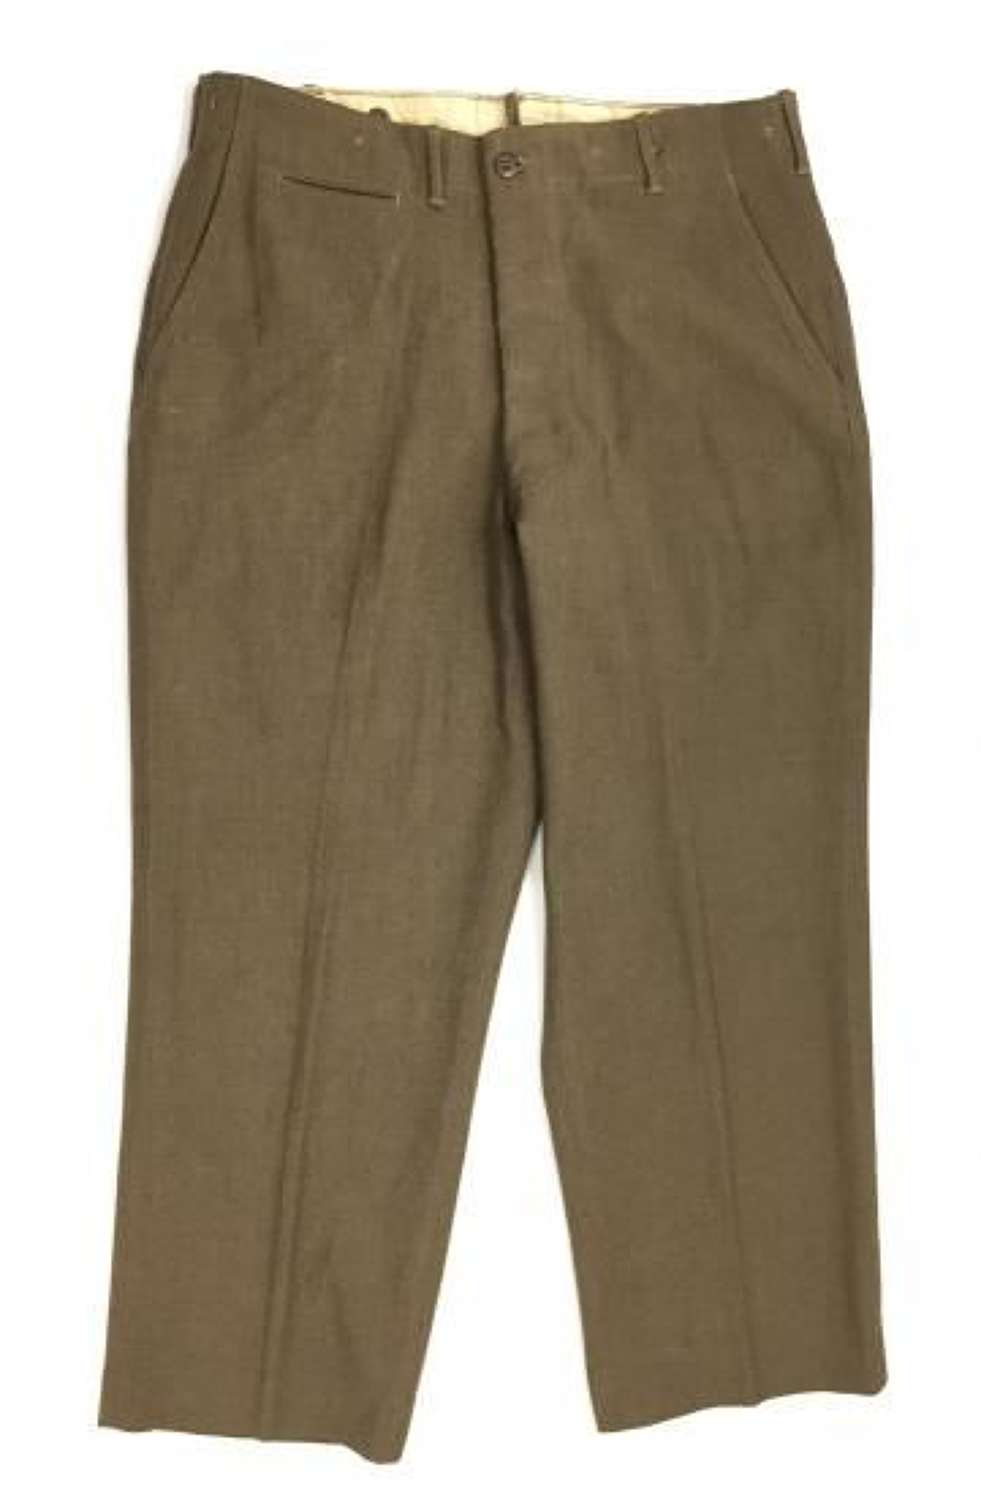 Original 1944 Dated US Army Enlisted Men's Trousers